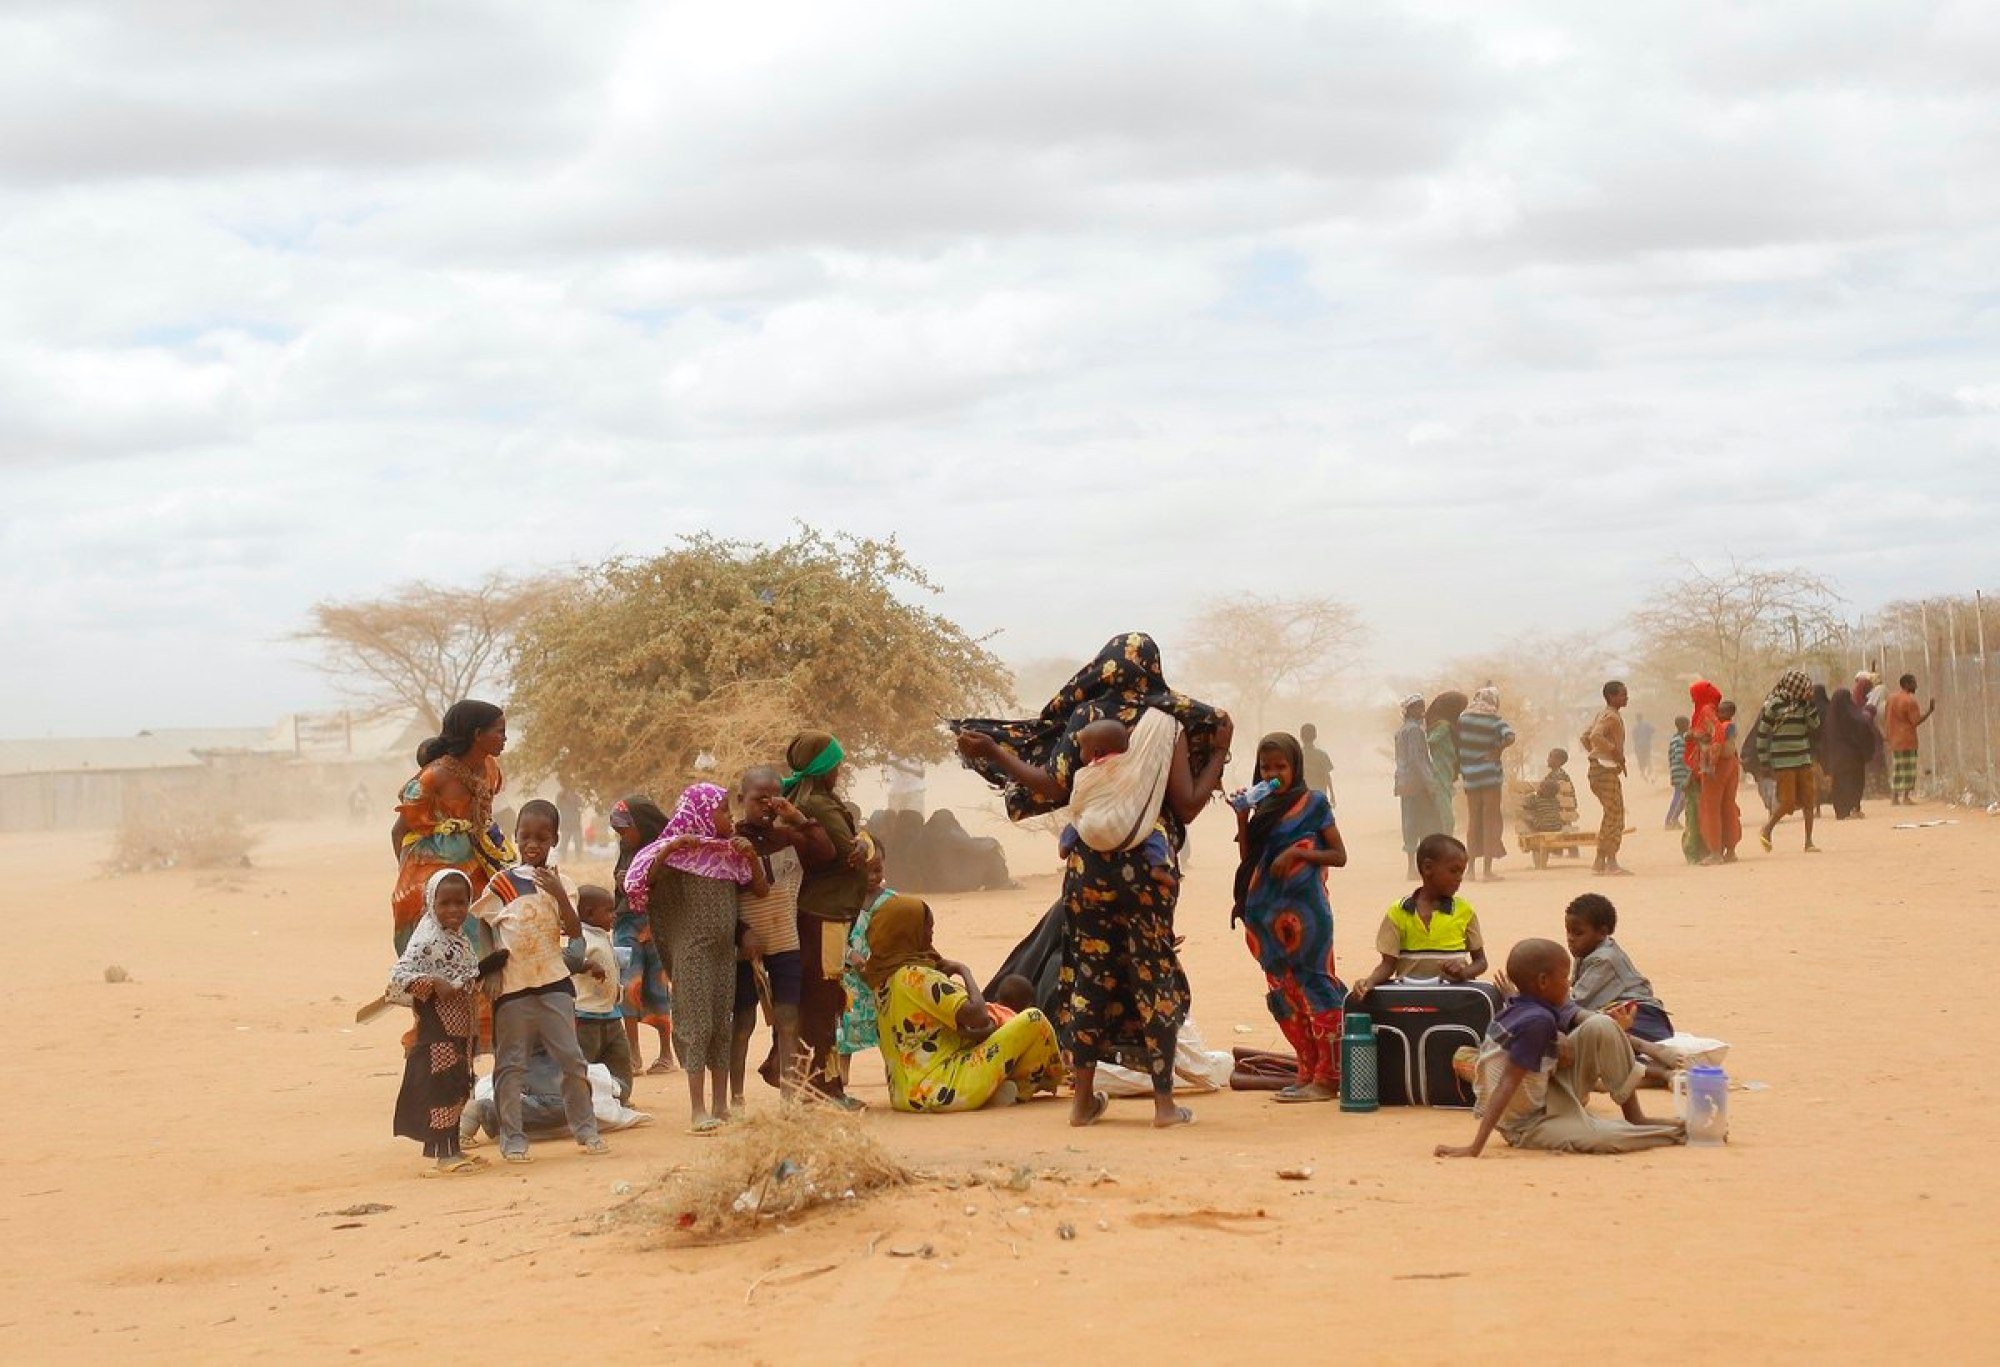 Newly arrived Somali refugees wait outside a UNHCR processing center at the Ifo refugee camp outside Dadaab, eastern Kenya, 100 kilometers (62 miles) from the Somali border. Human-induced climate change contributed to low rain levels in East Africa in 2011, making global warming one of the causes of Somalia's famine and the tens of thousands of deaths that followed, a new study has found—Aug. 5, 2011 (AP Photo/Jerome Delay)